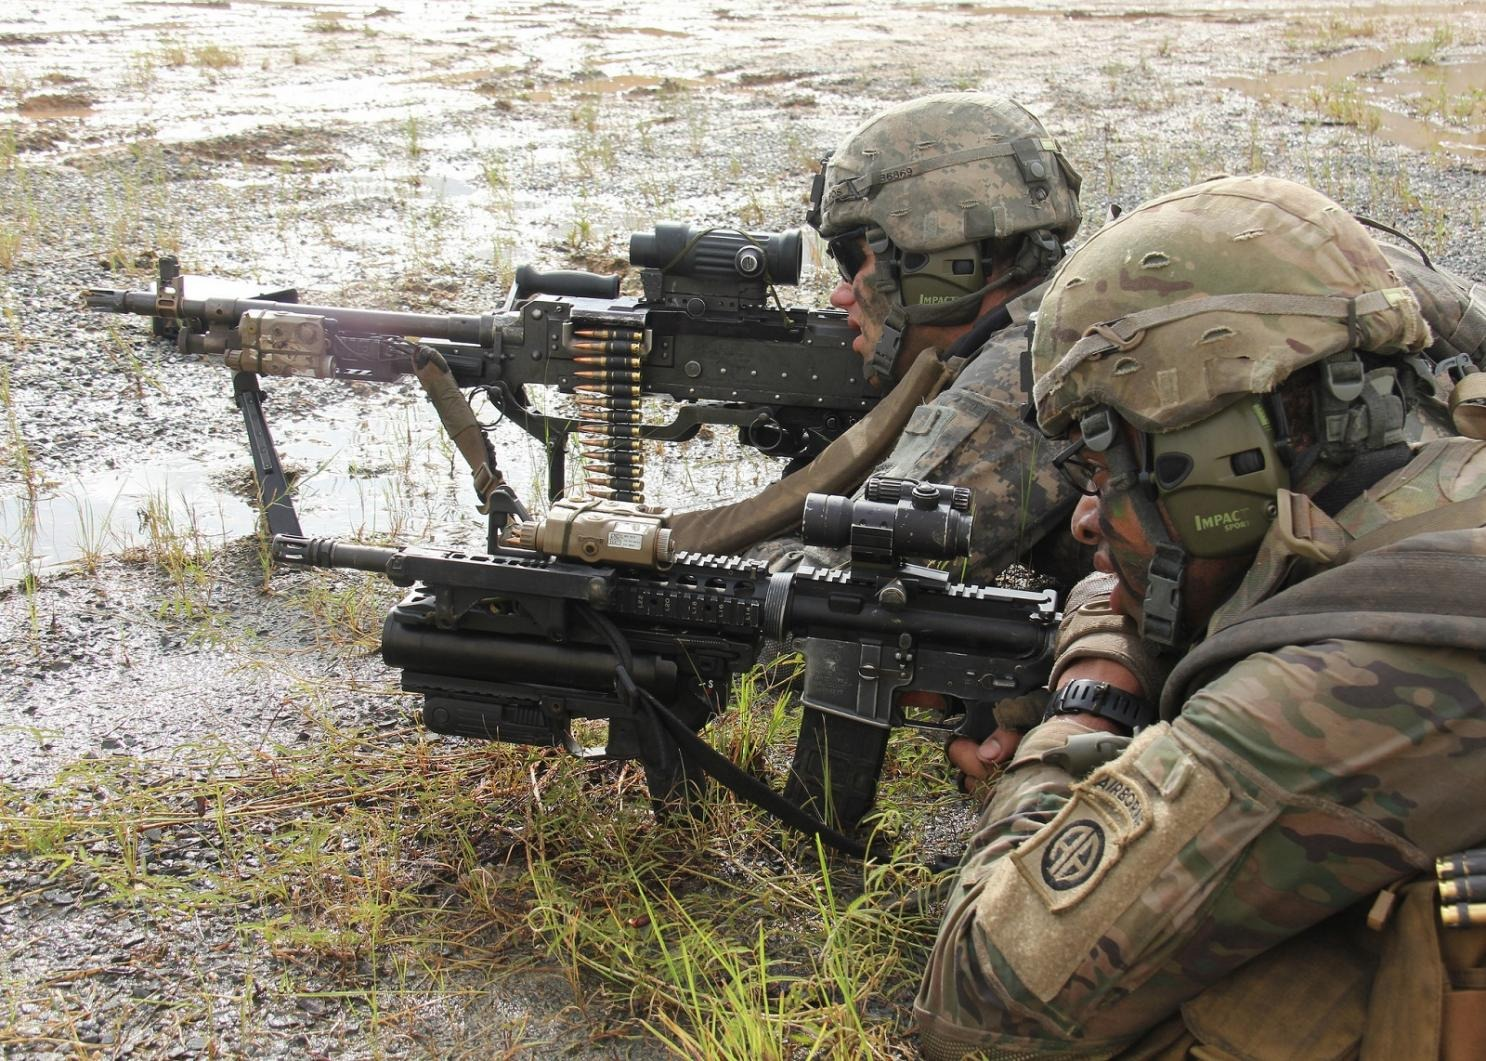 Army Dream: A Rifle That Can Fire Up to 5 Rounds at One Time - Warrior Maven